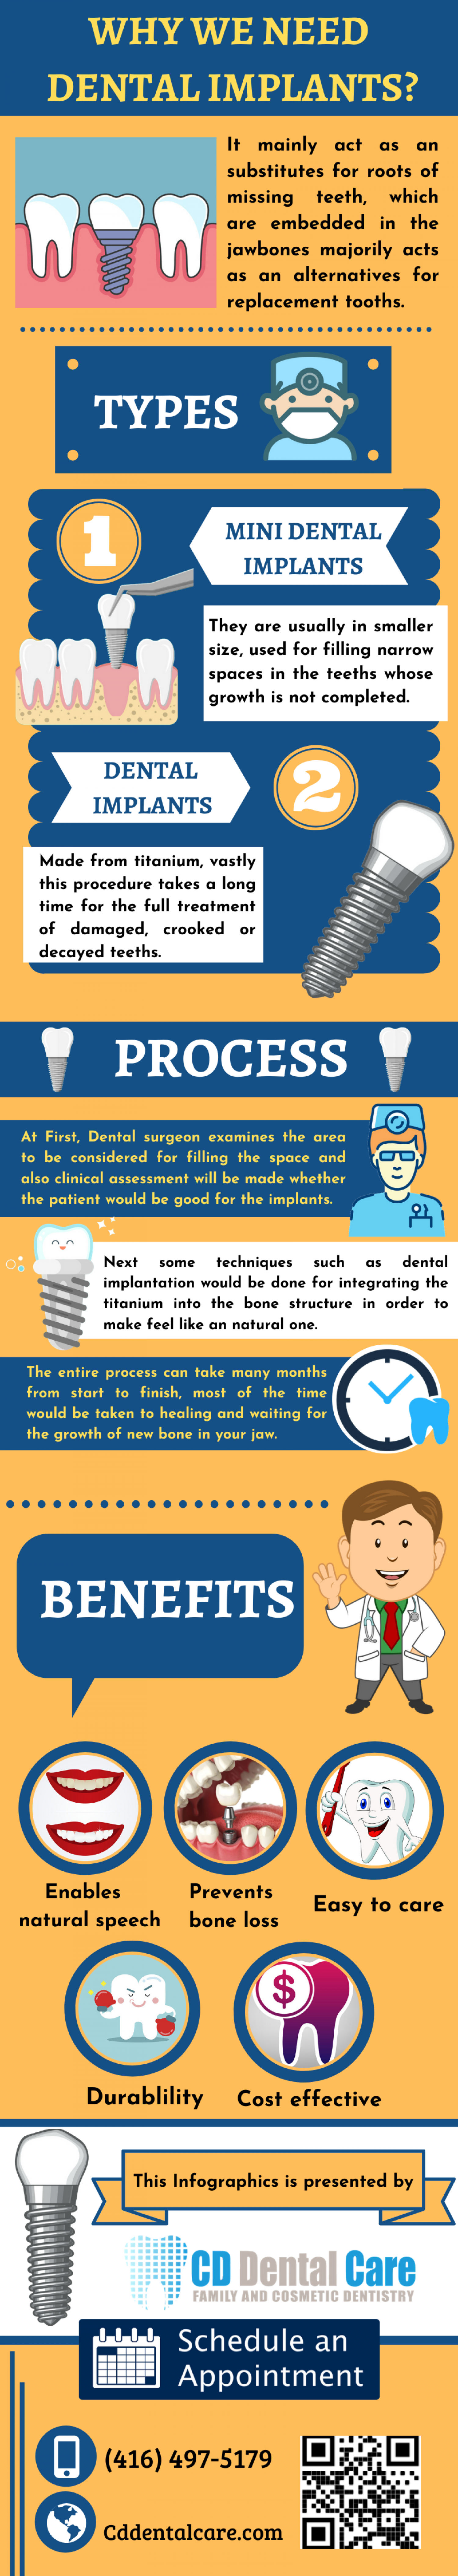 Replace your Lost Teeth with Implants Infographic